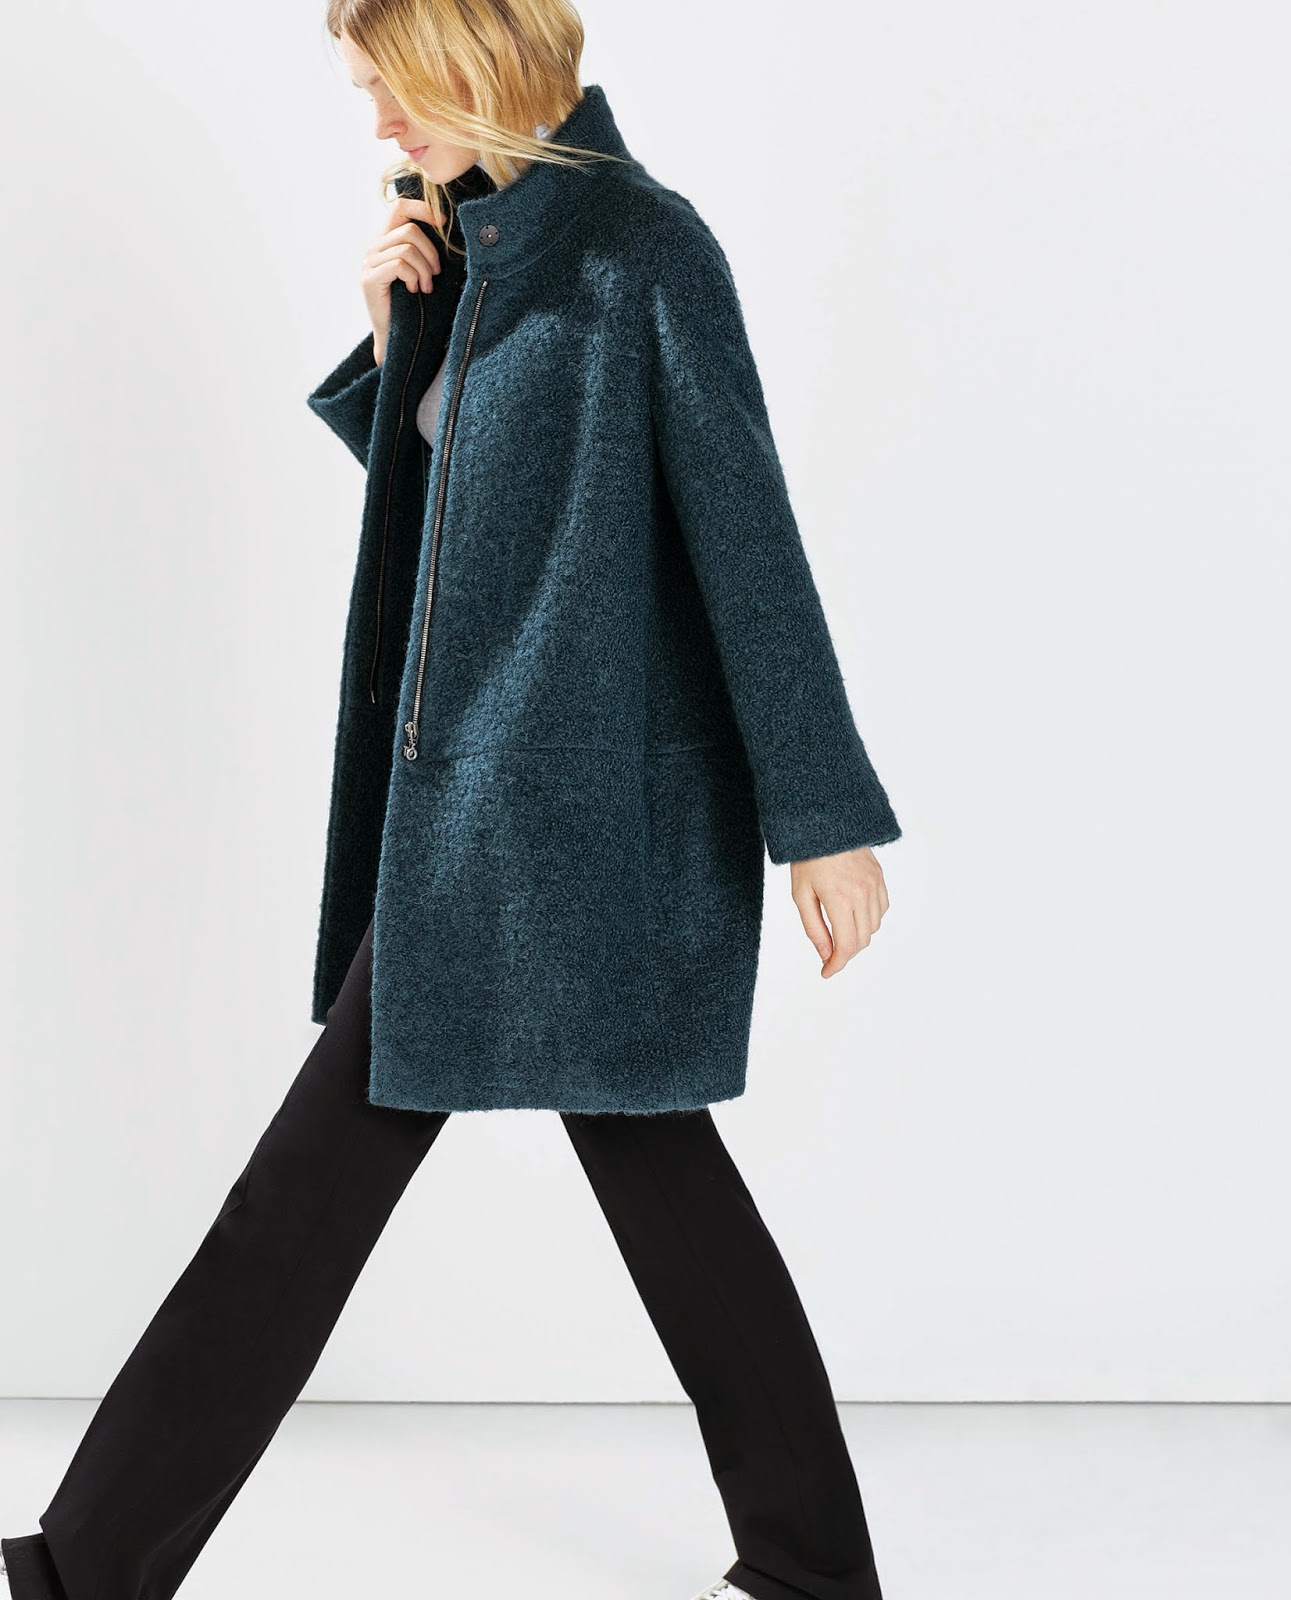 zara teal coat, zara petrol coat,